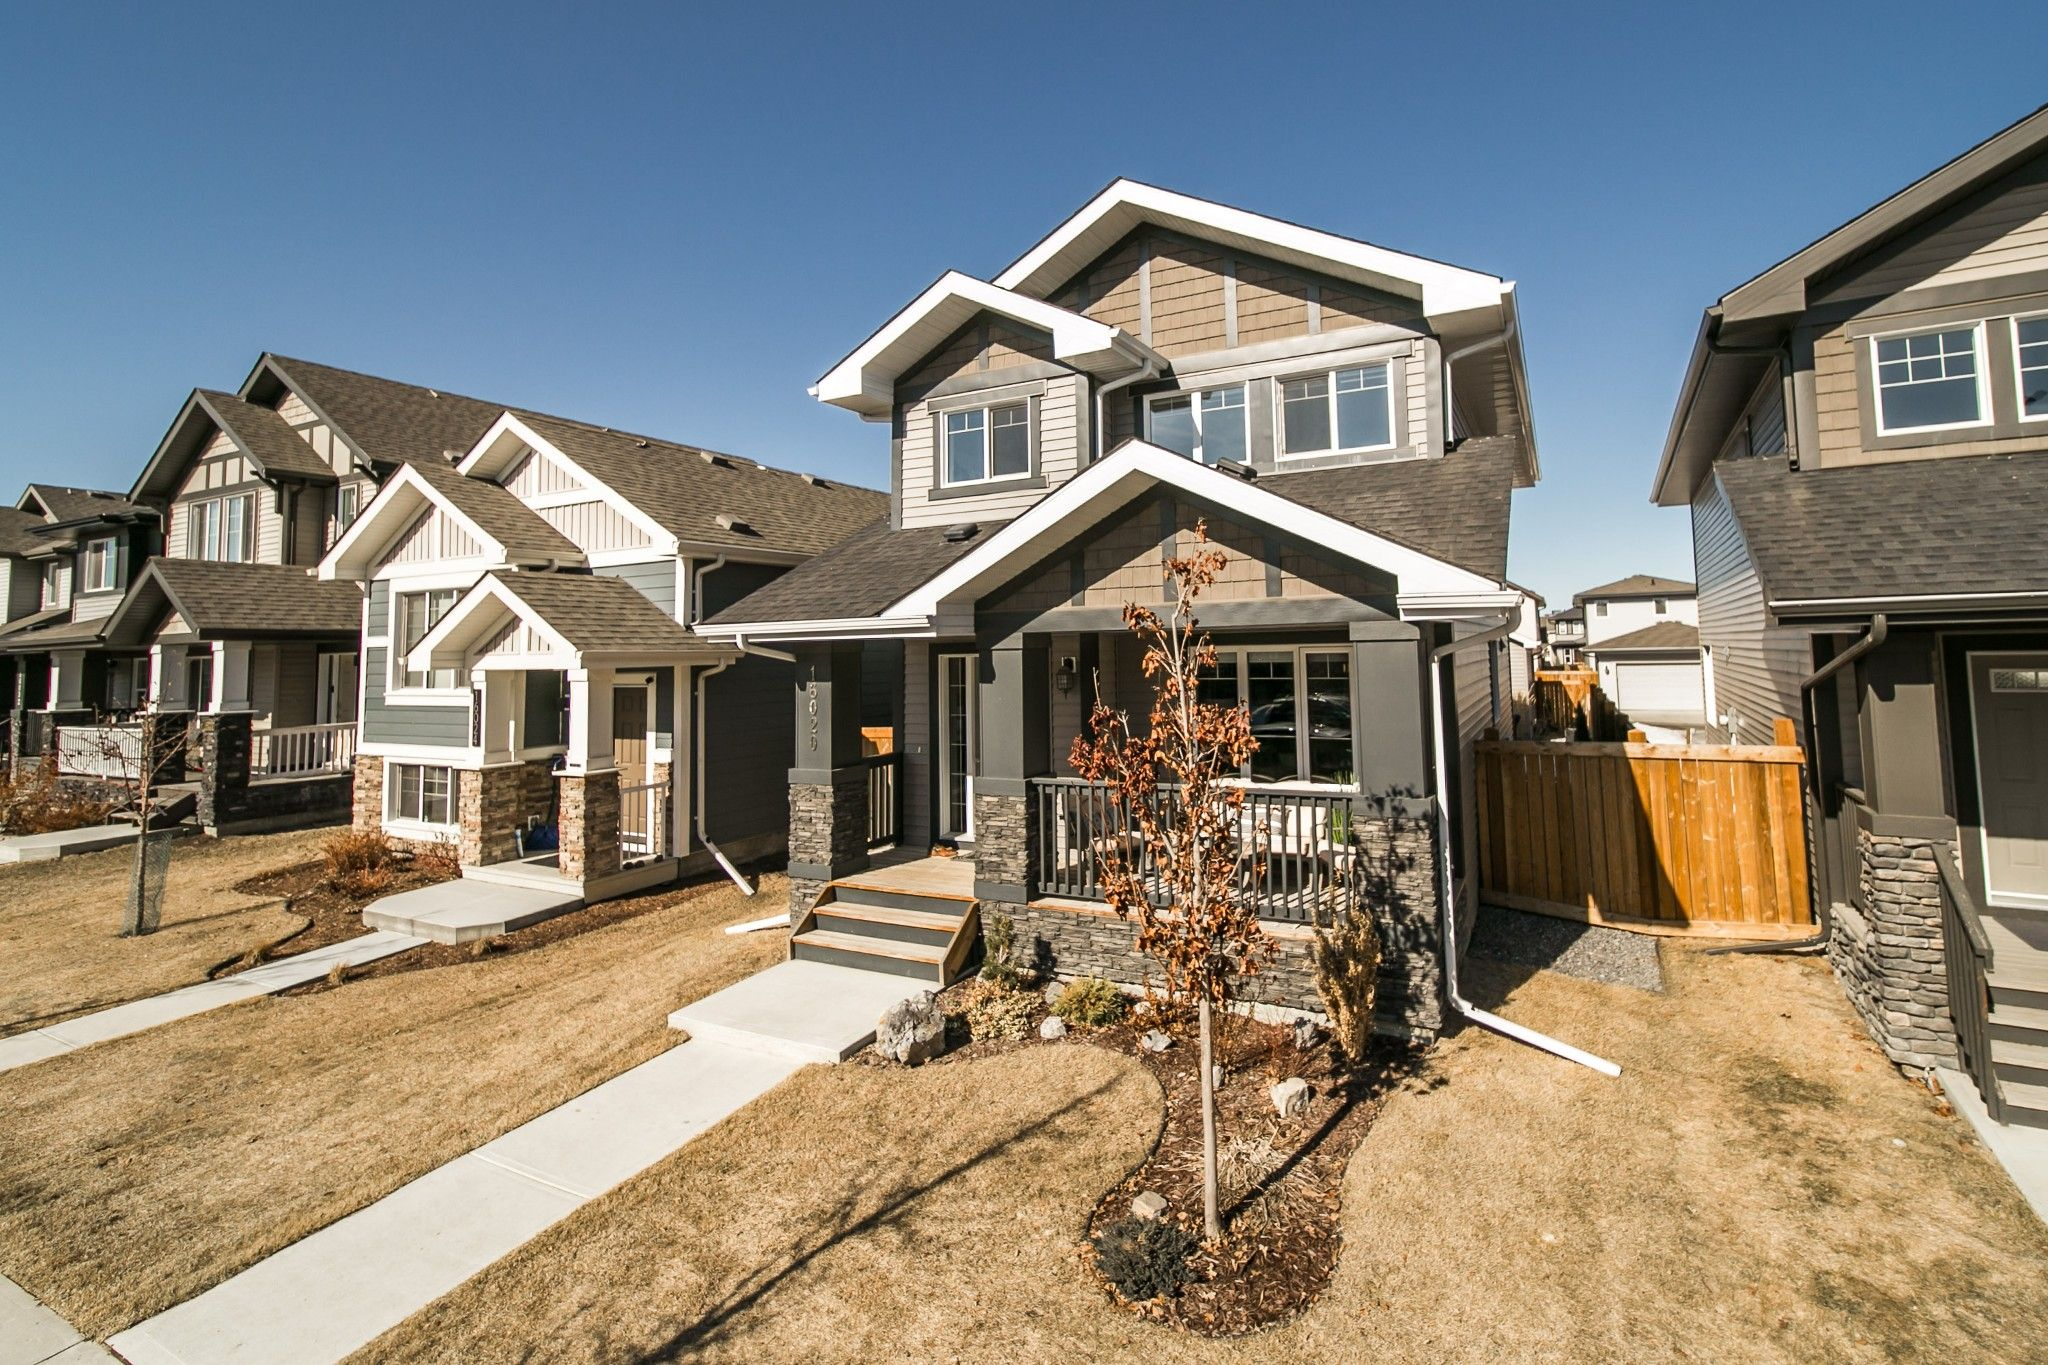 Main Photo: 16020 12 Ave SW in Edmonton: House for sale : MLS®# E4234987